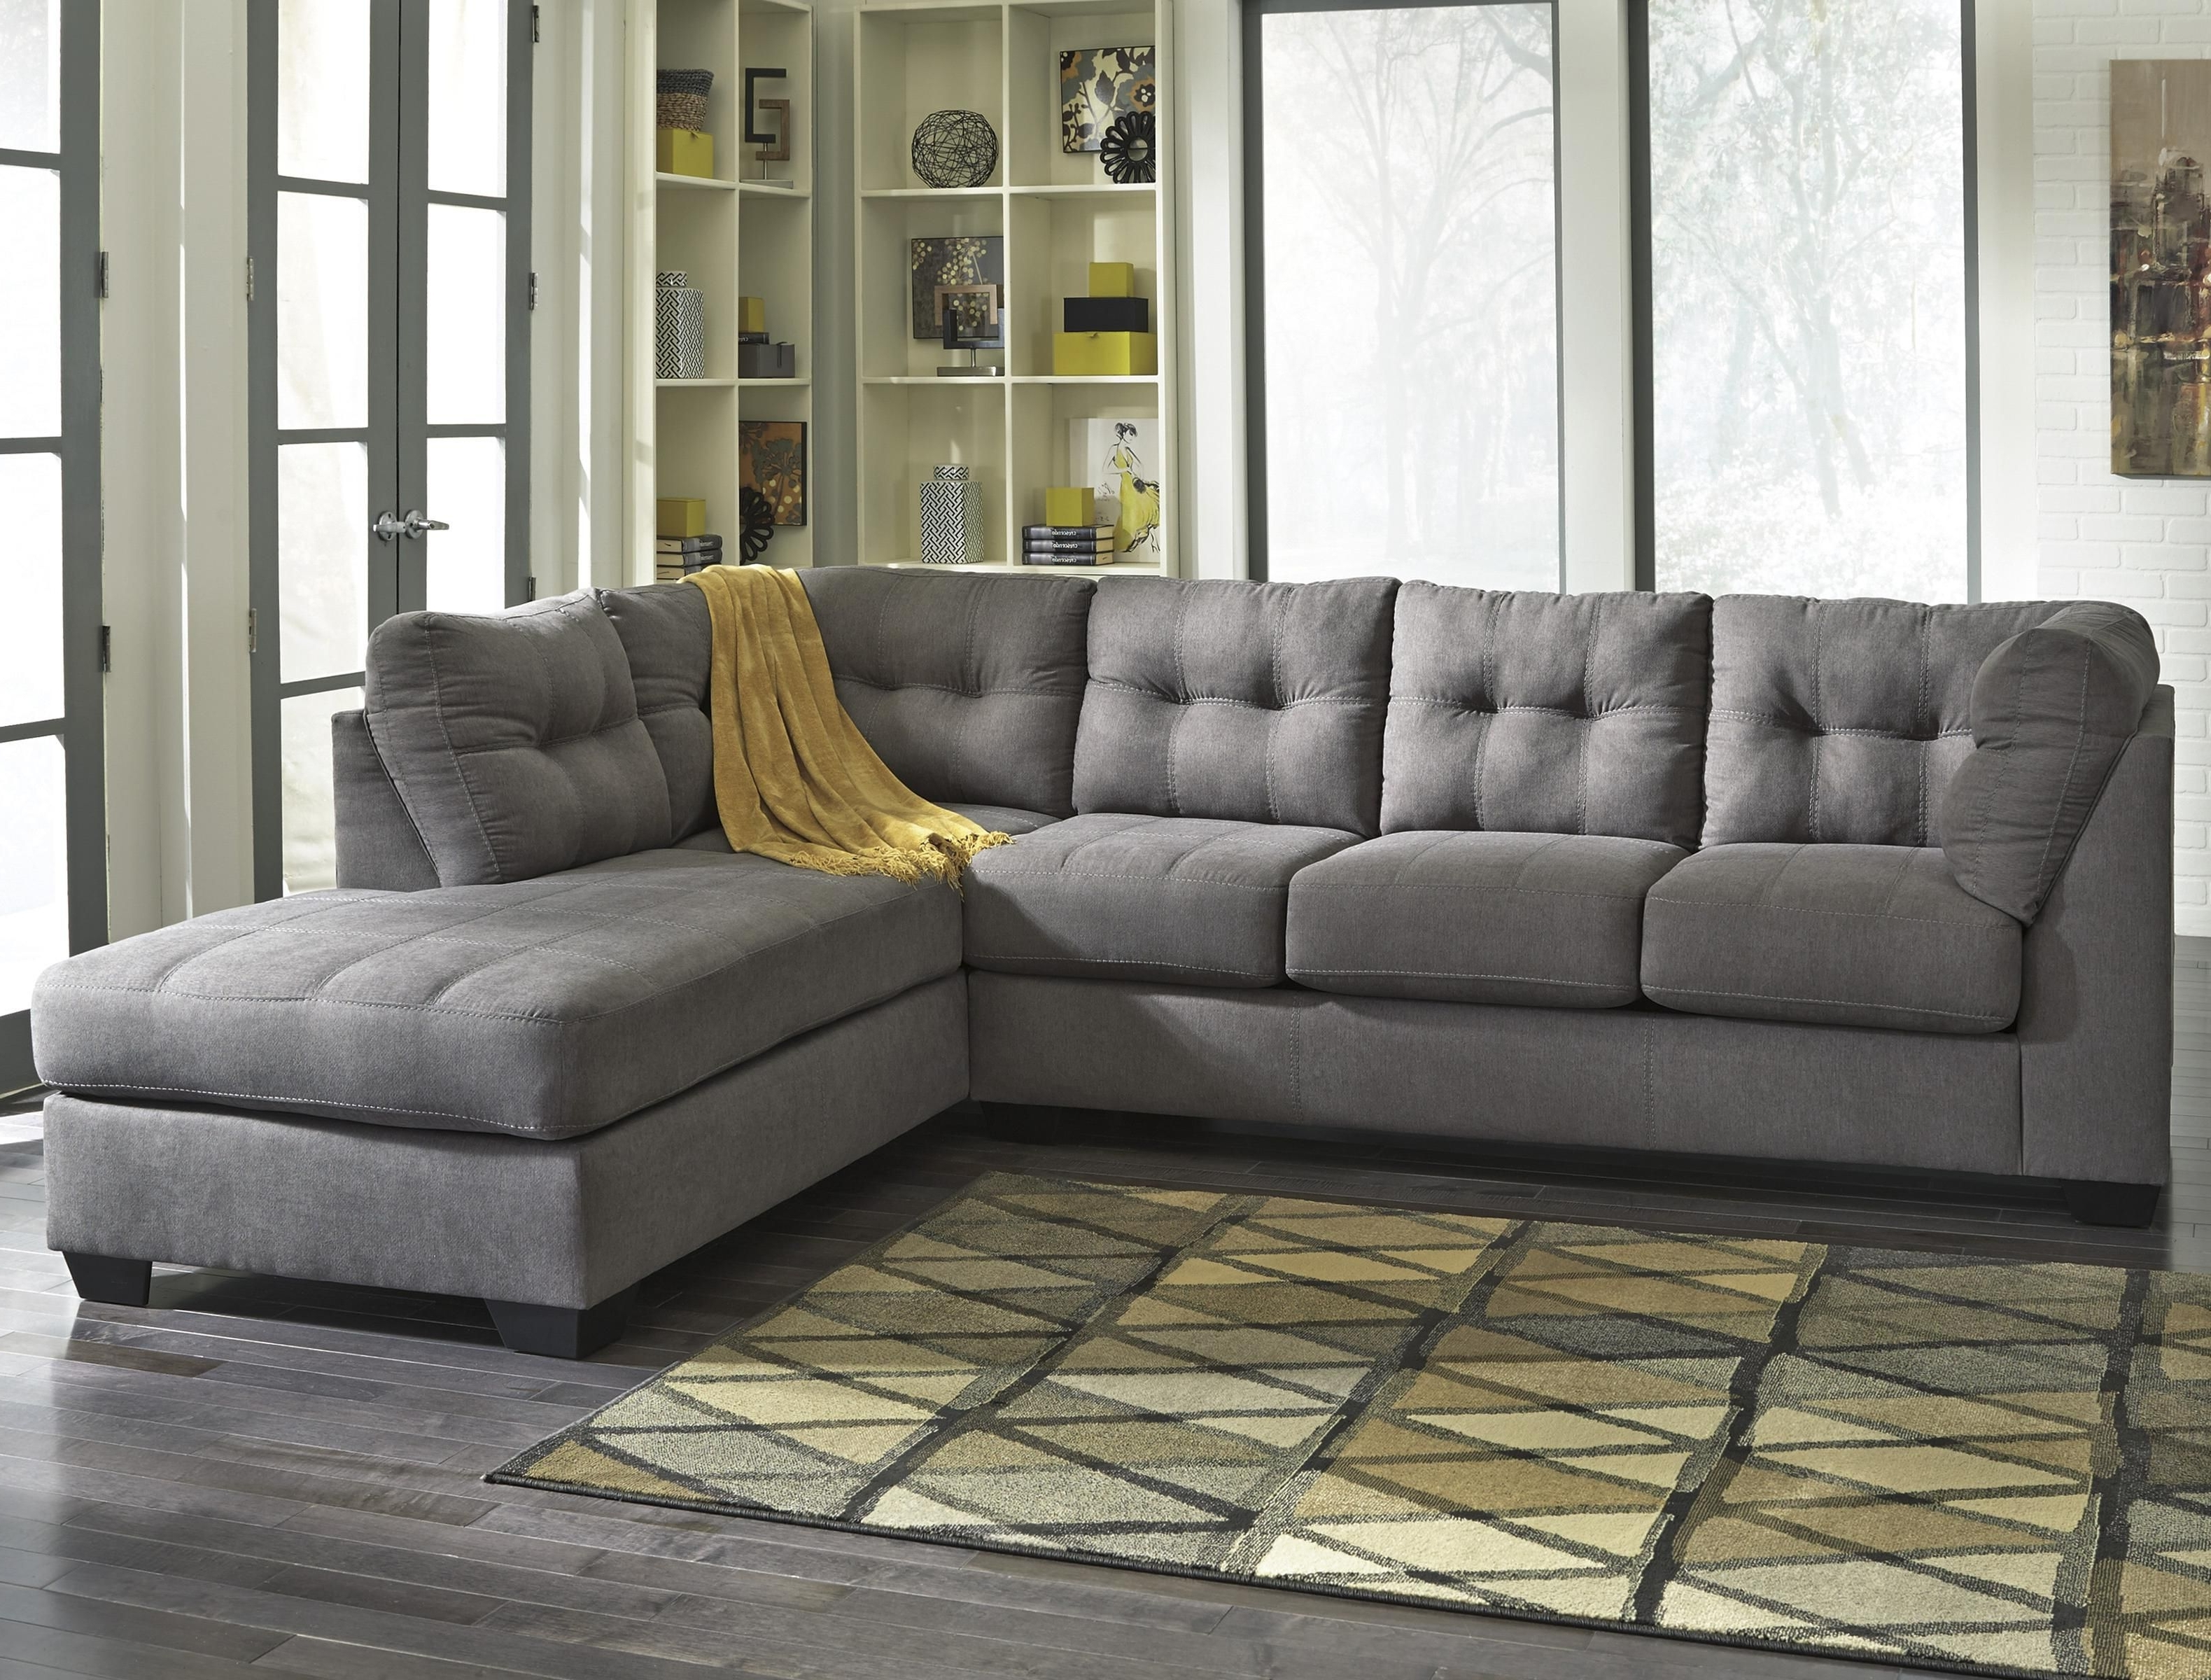 2 Piece Sectionals With Chaise Lounge Regarding Best And Newest 2 Piece Sectional W/ Sleeper Sofa & Chaise Maier – Charcoal  (View 11 of 15)